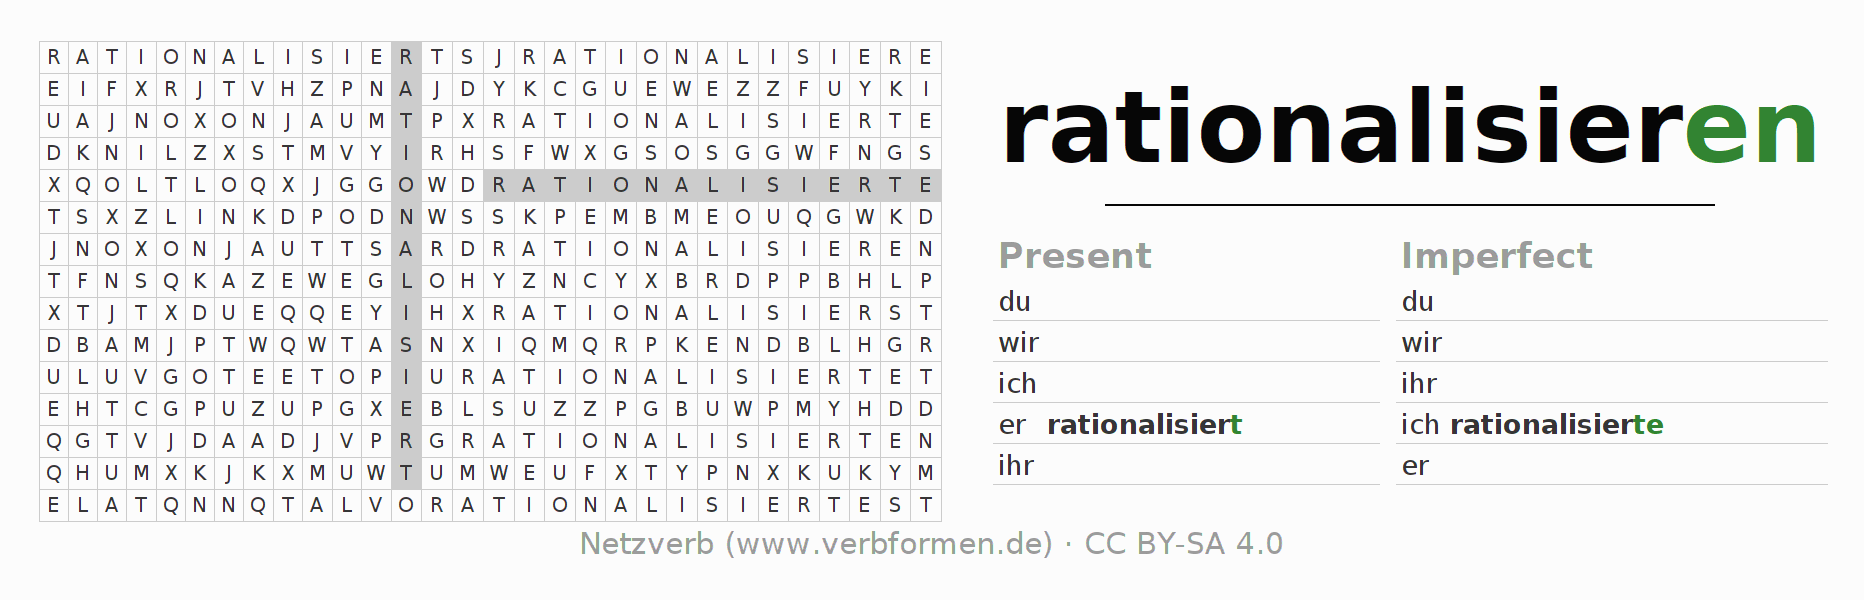 Word search puzzle for the conjugation of the verb rationalisieren